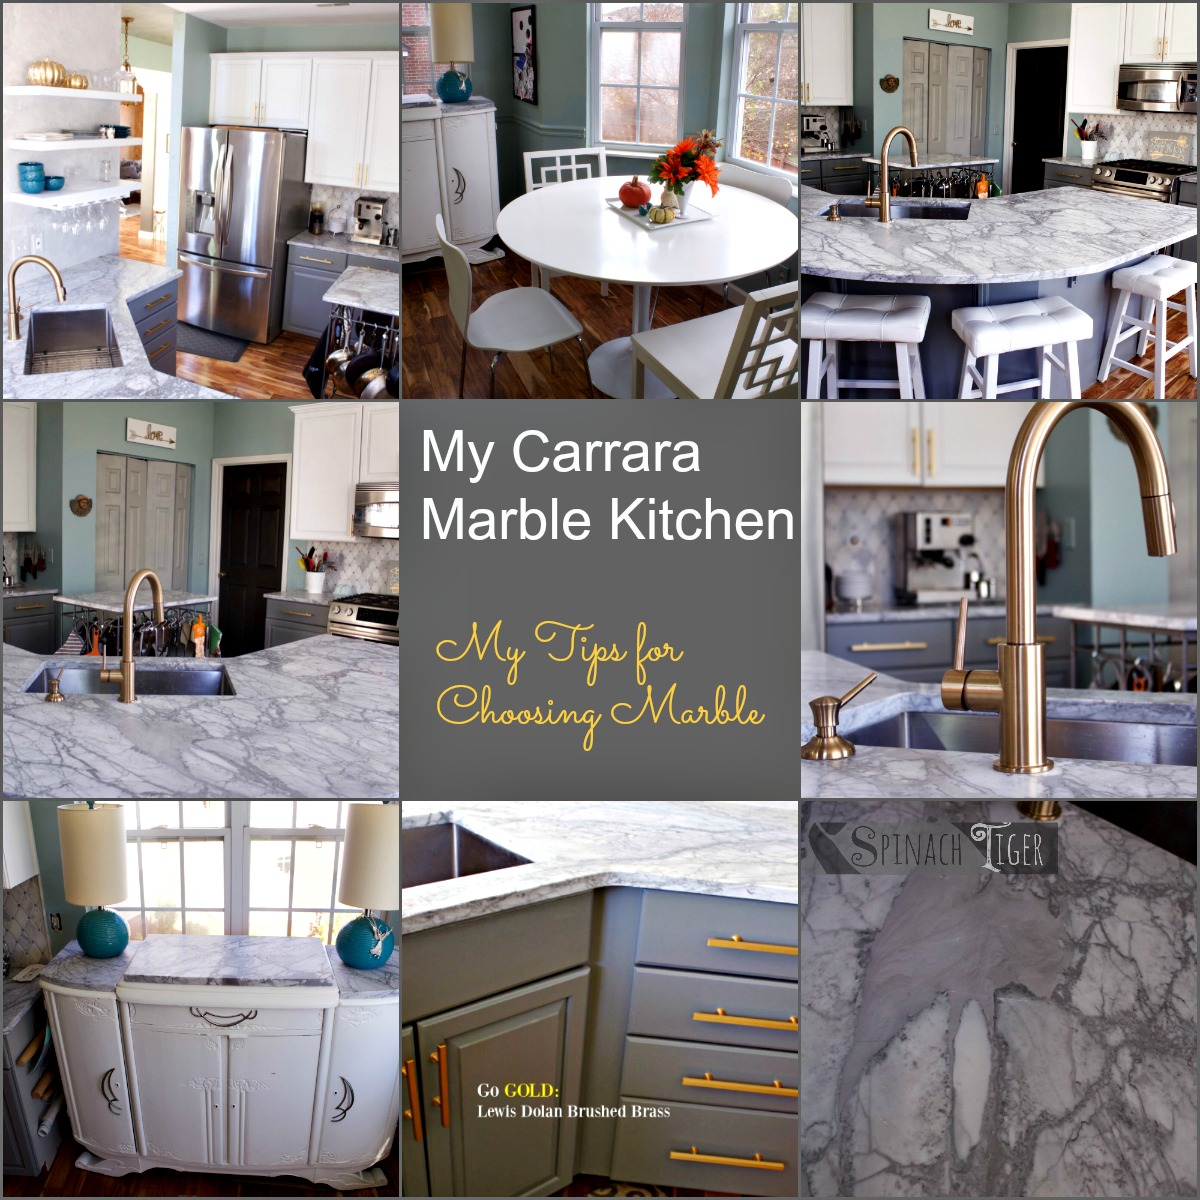 galley kitchen design for wheelchair user kitchens for campers accessible kitchens wheelchair. Black Bedroom Furniture Sets. Home Design Ideas